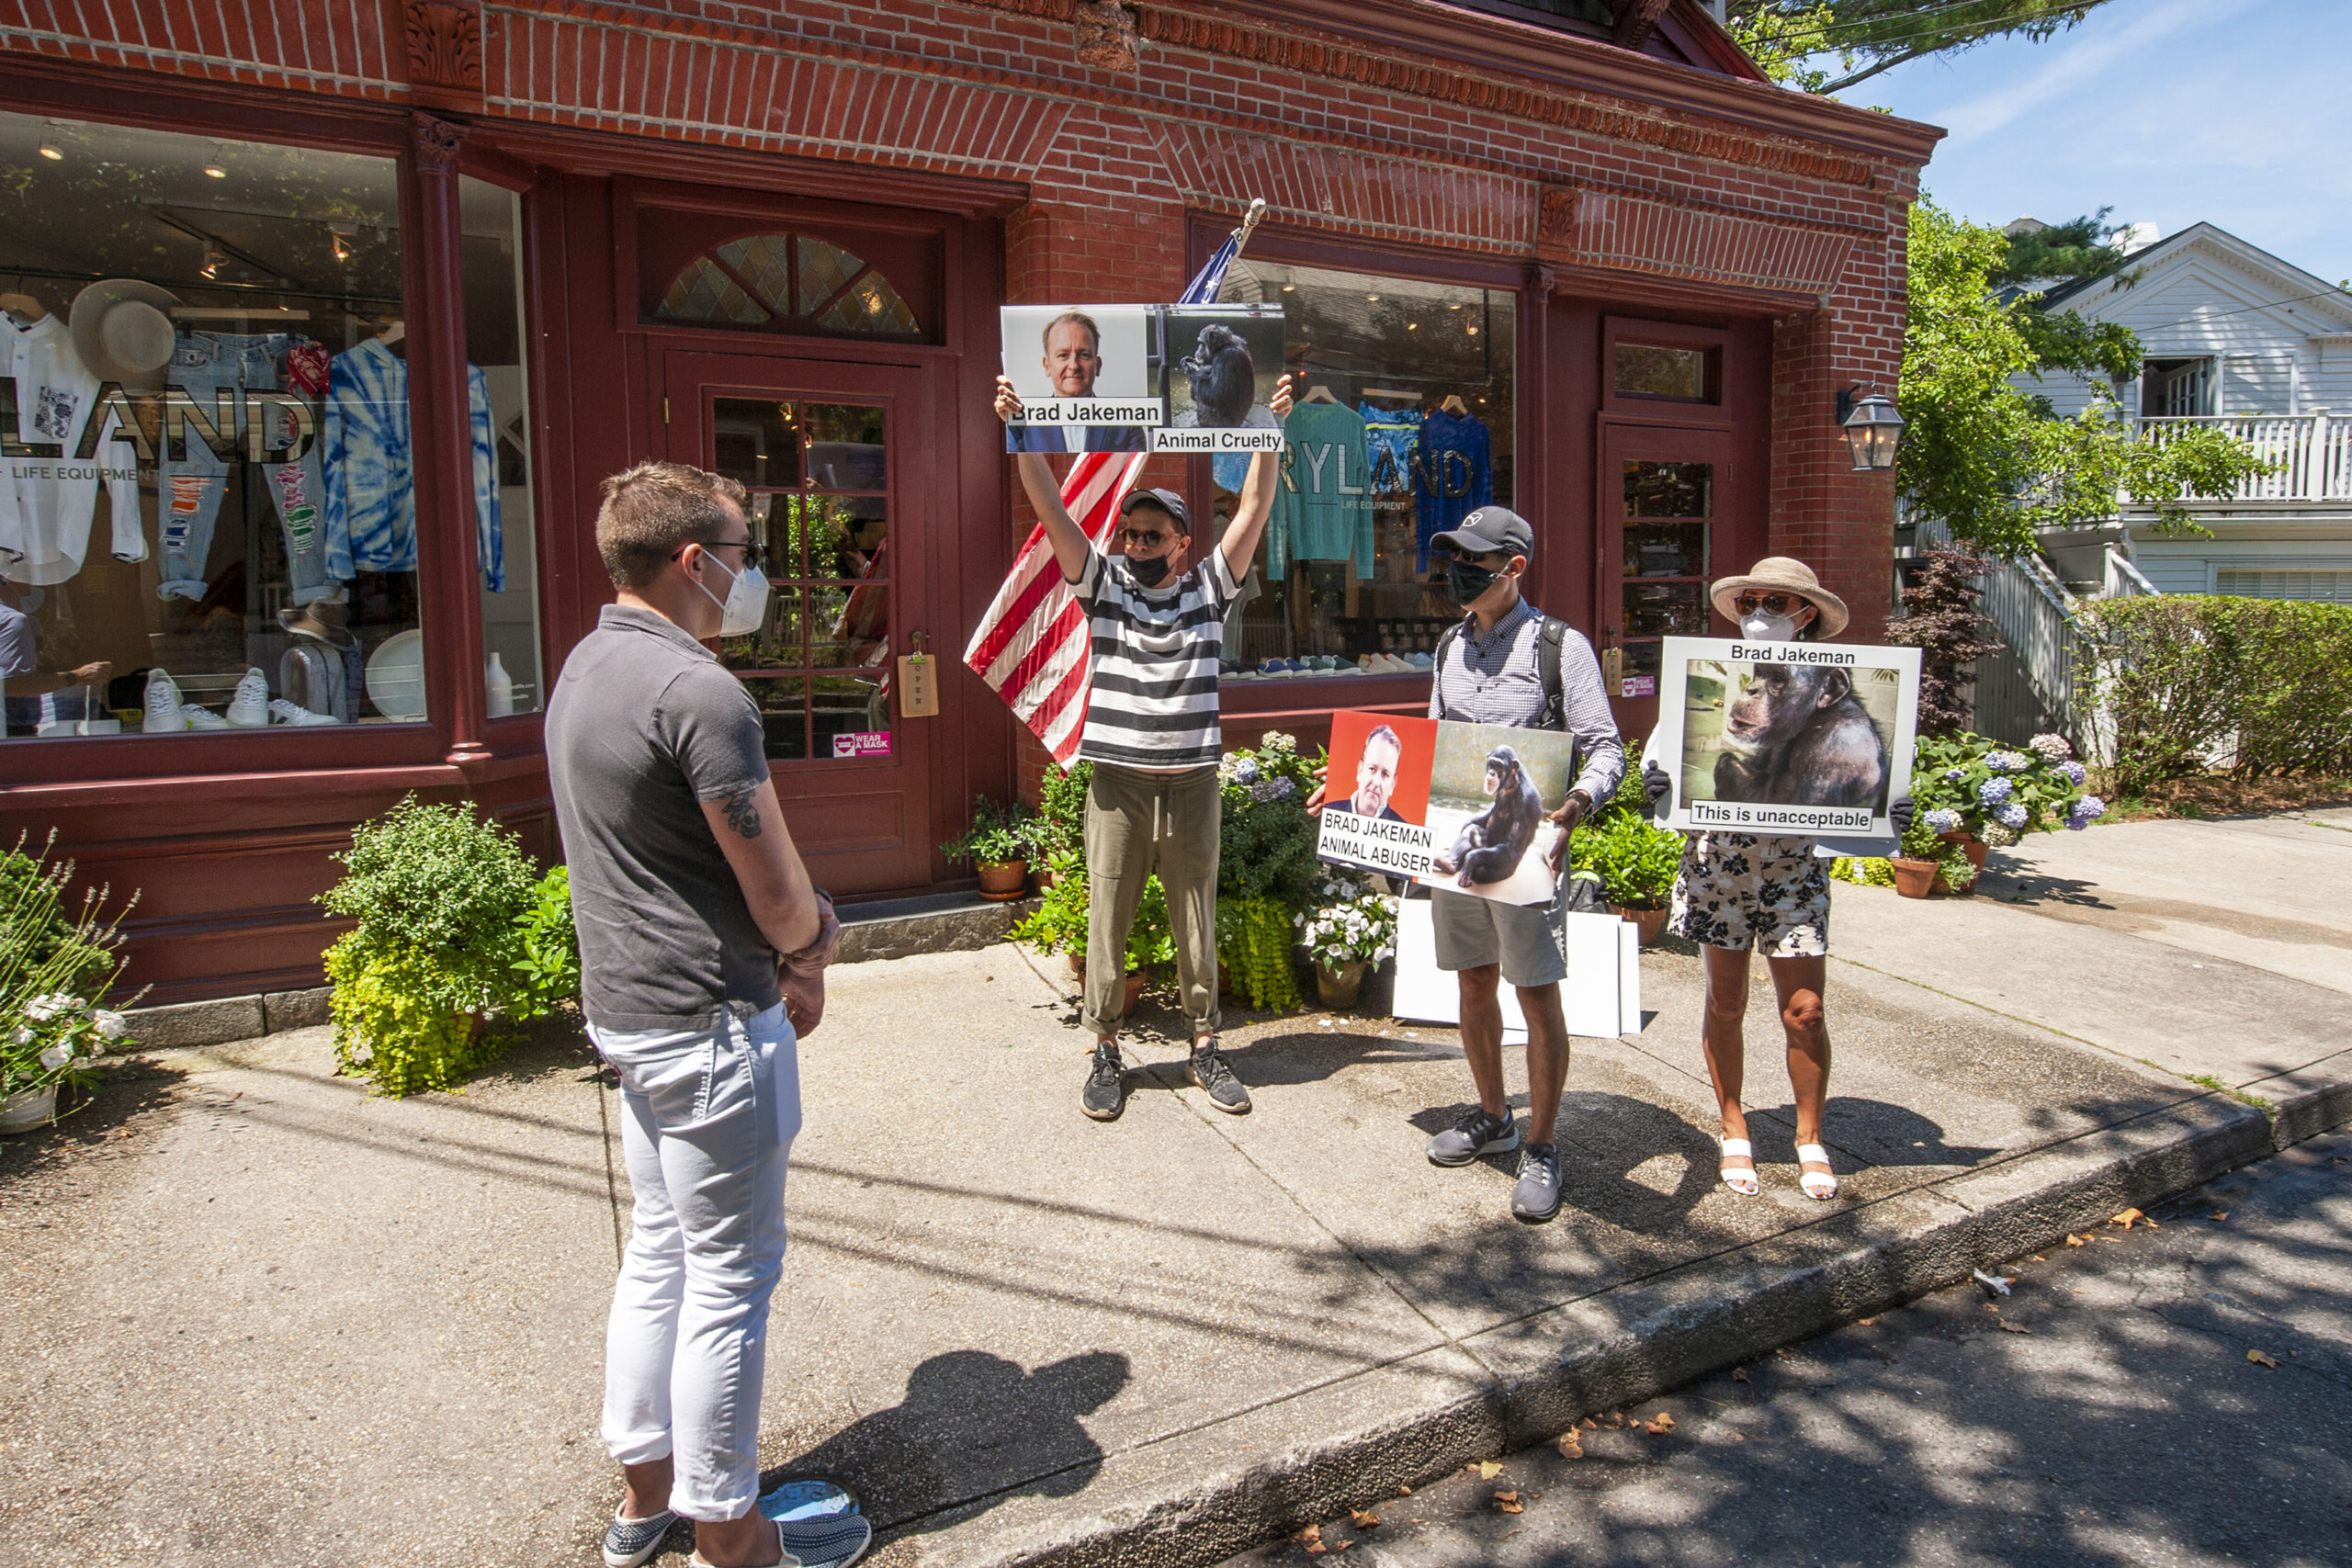 Protesters gathered on Madison Street in Sag Harbor on Saturday, July 25, demonstrating against mistreatment of chimpanzees at a Georgia sancturary. MICHAEL HELLER